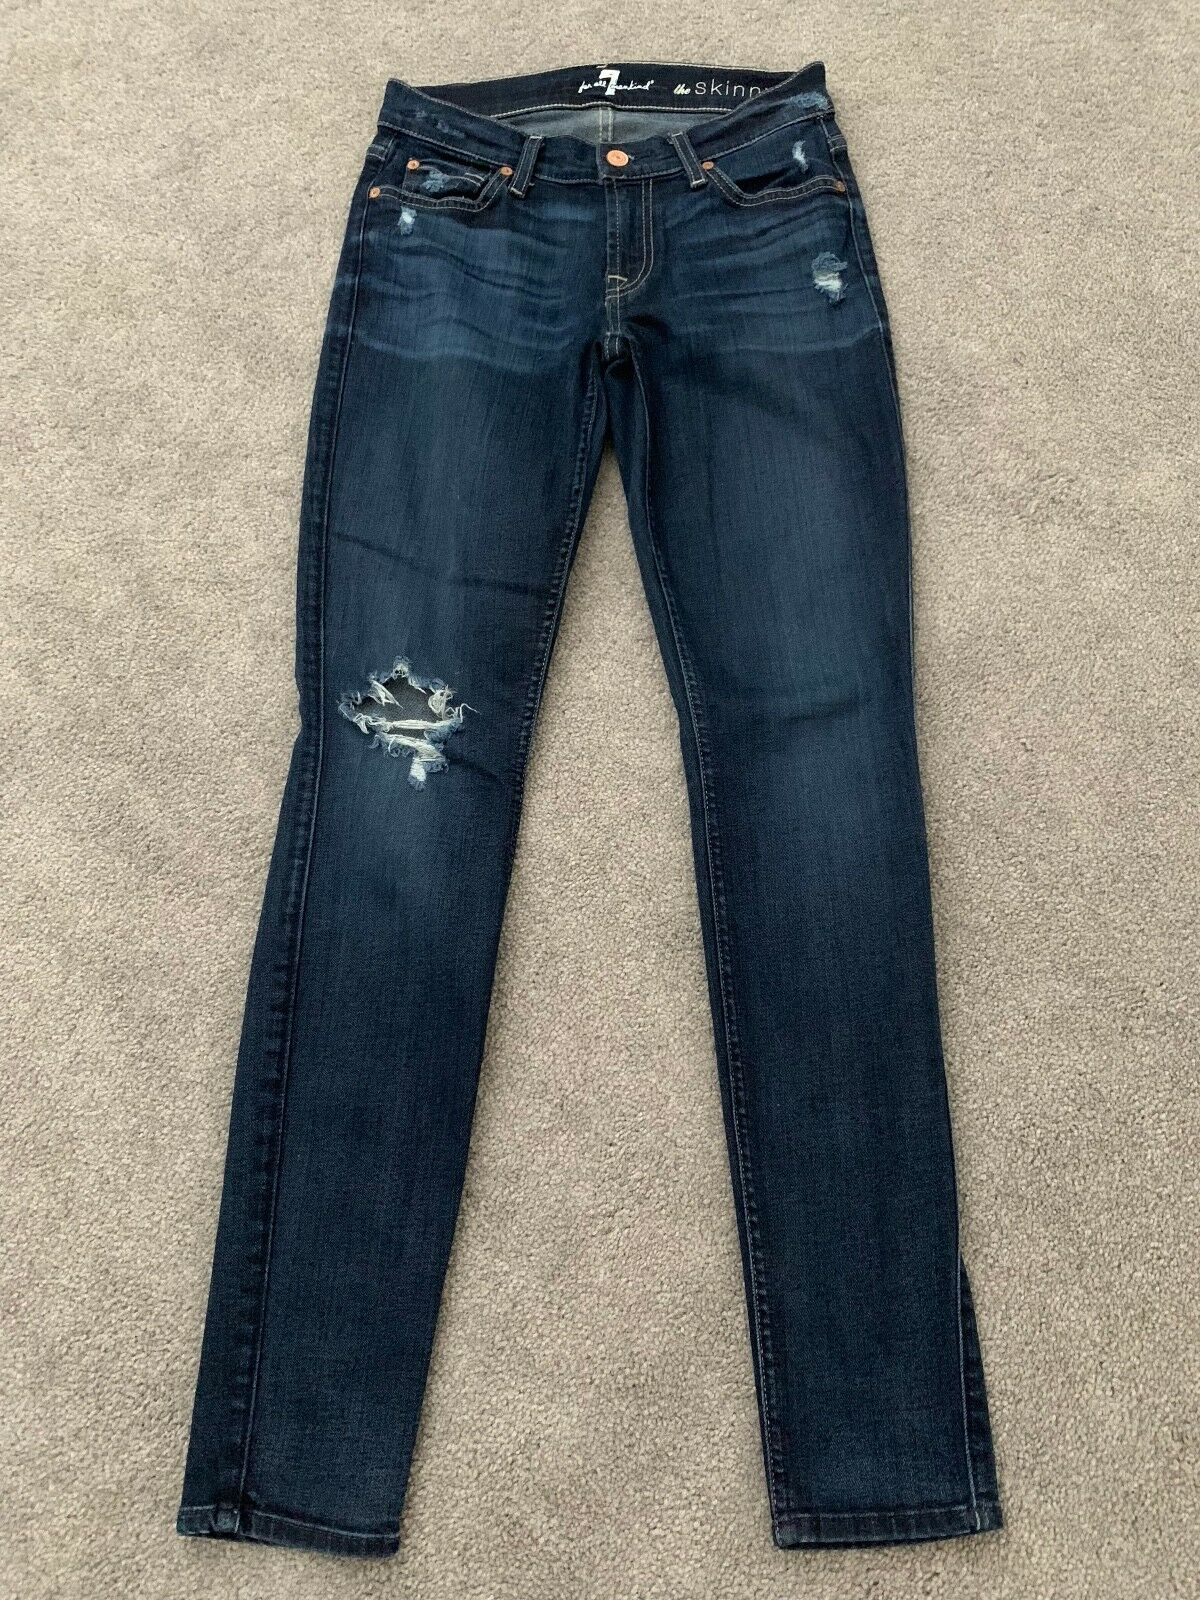 7 For All Mankind Destroyed Destruction Skinny Jeans Dark Denim 25